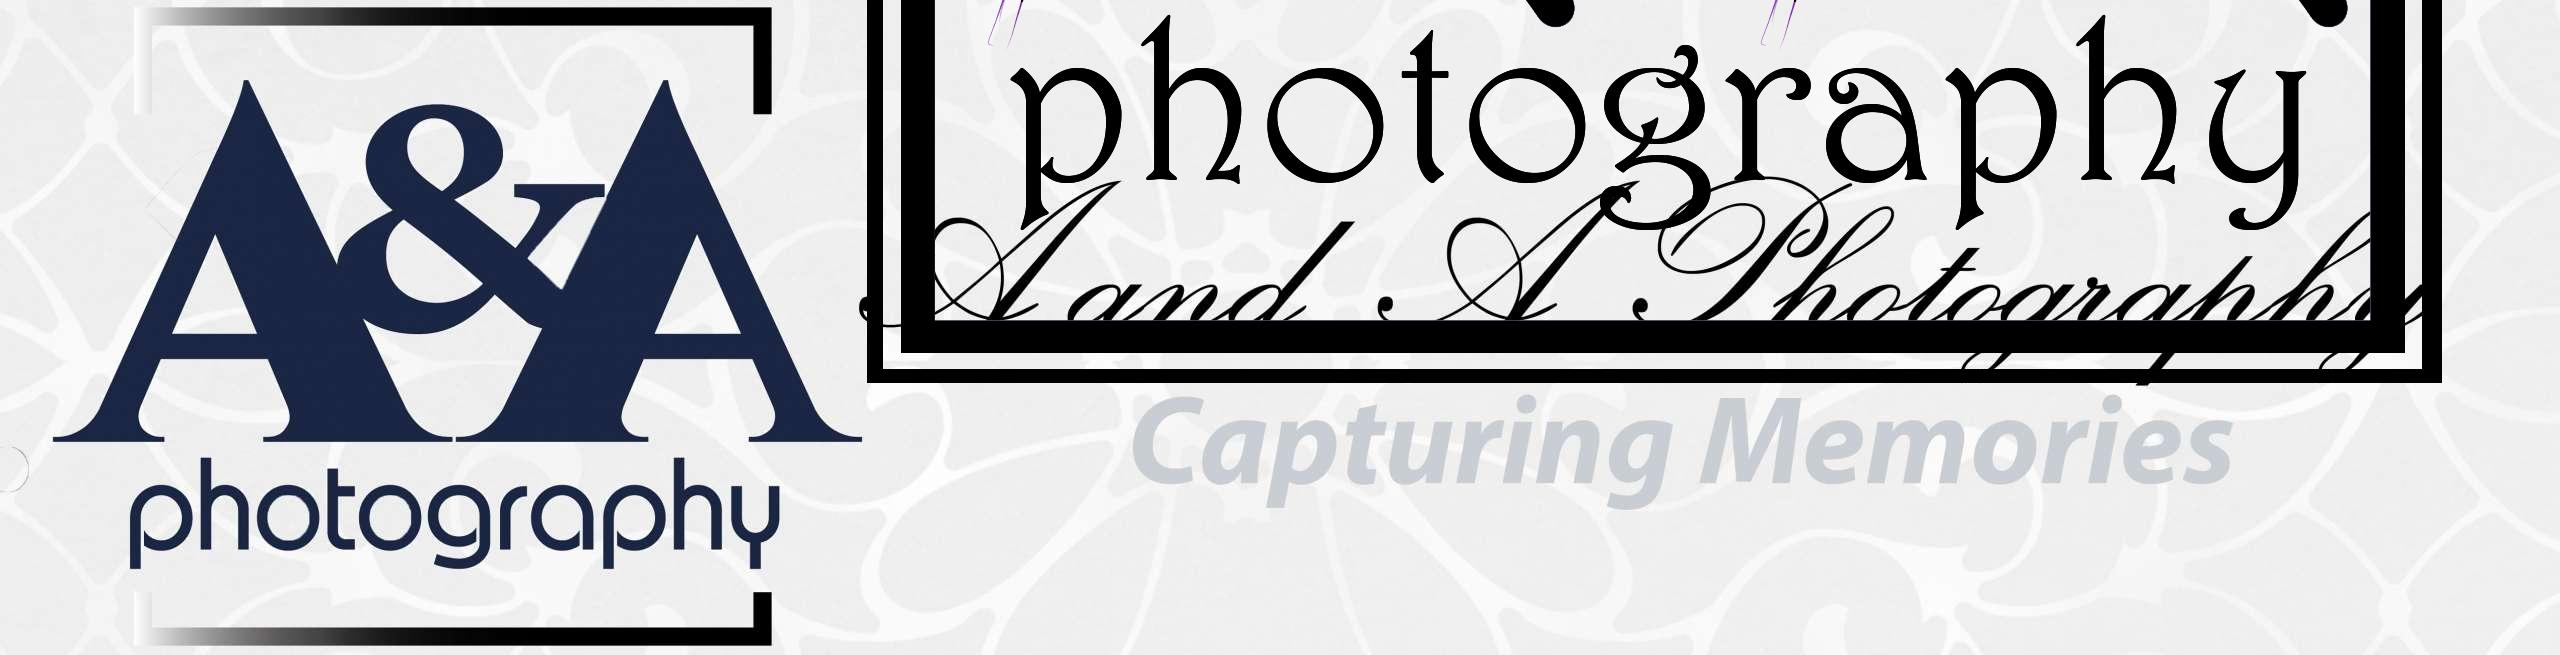 A and A Photography logo